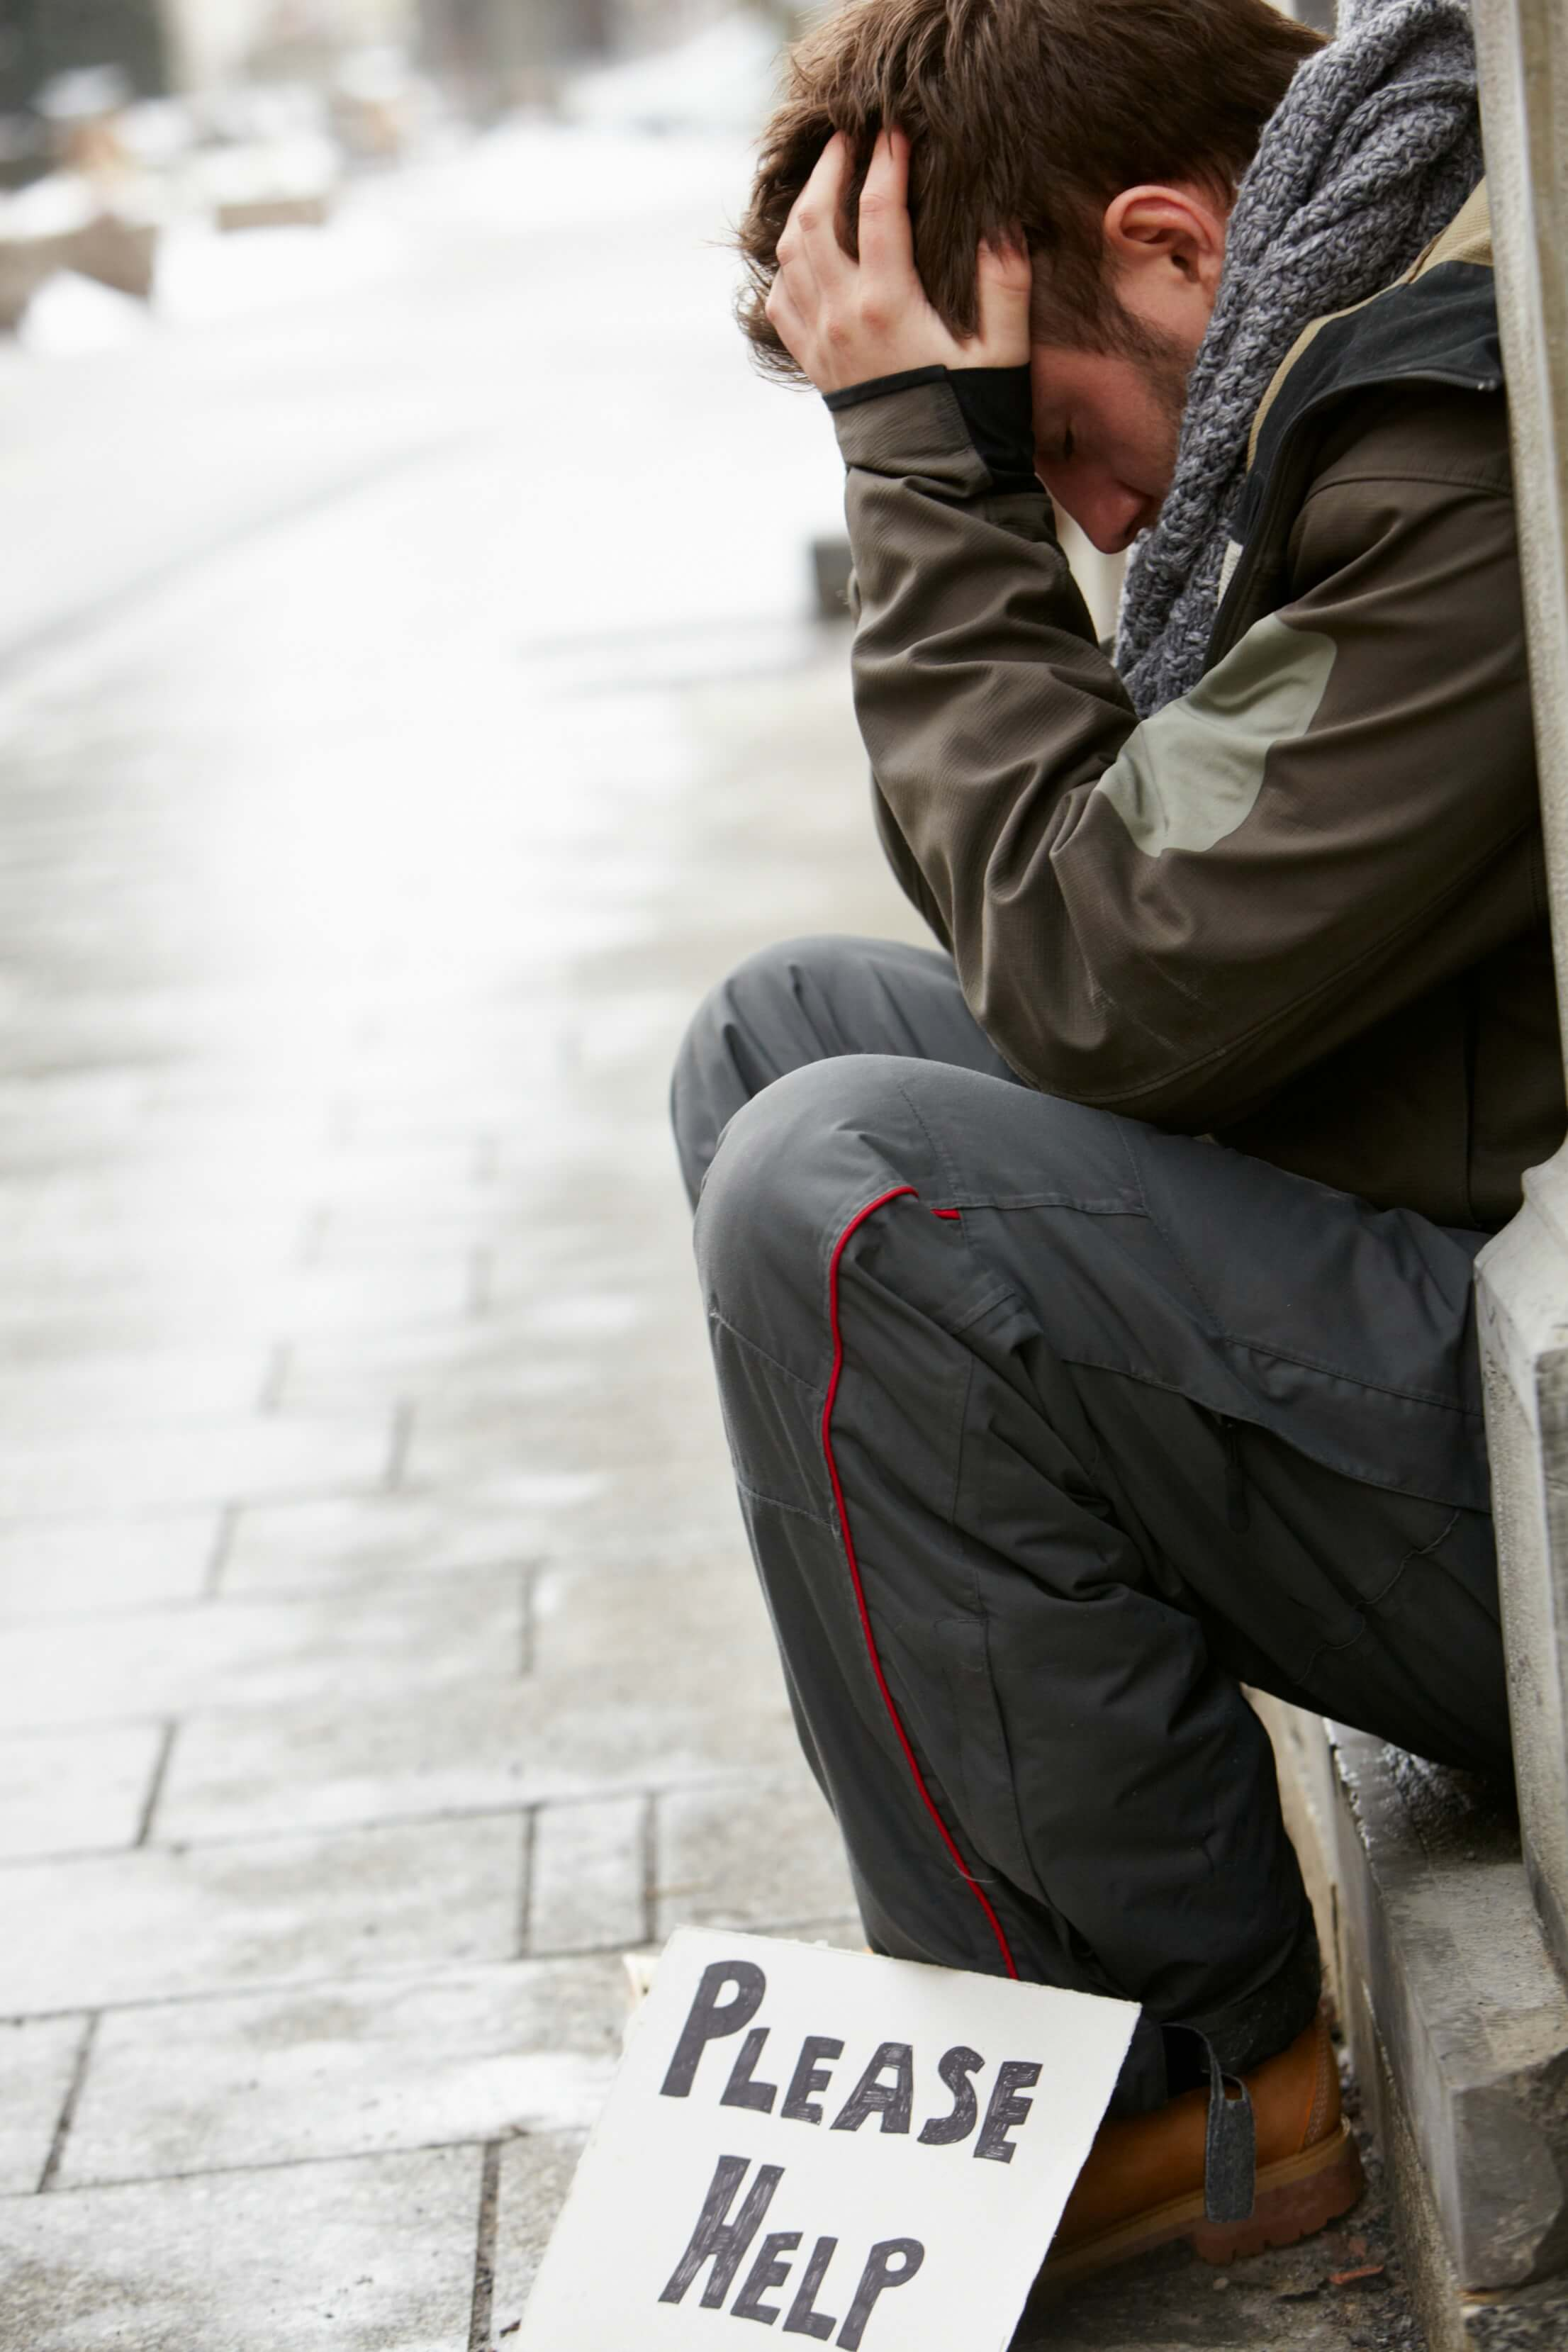 youth homelessness - a young man begging on the street